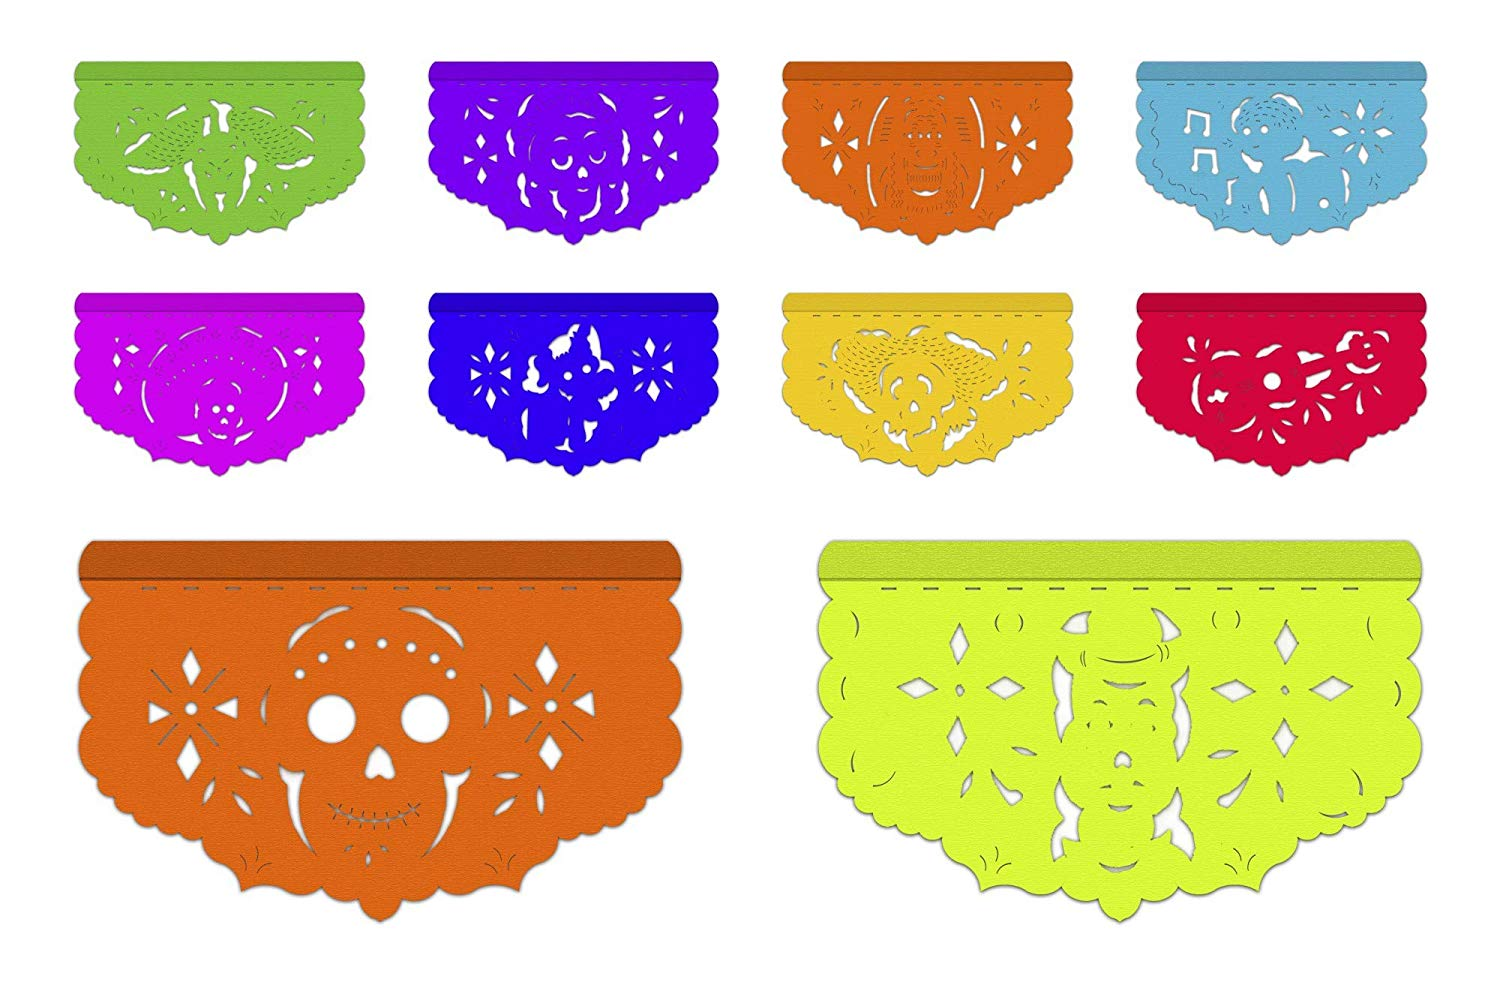 Amazon.com: 5 Pack Mexican Papel Picado Banners, 20 Feet.